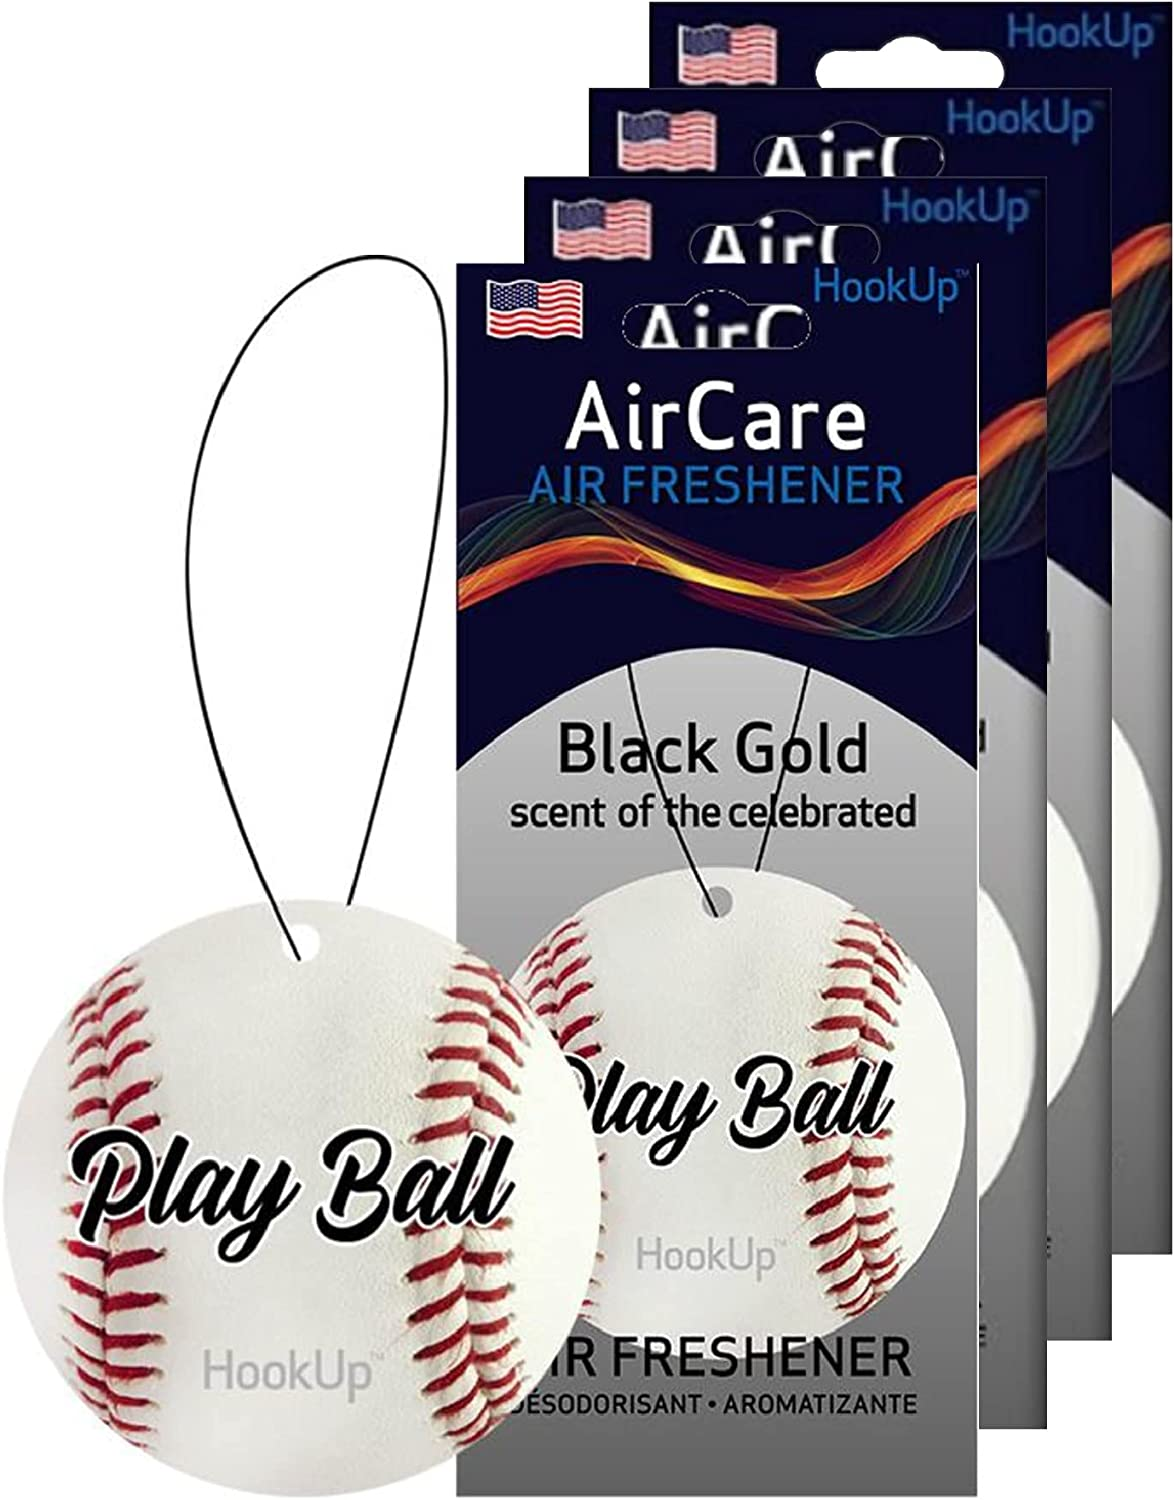 HookUp Car Over item handling Air Fresheners - 4 Hanging Regular discount Sports of Themed Pack